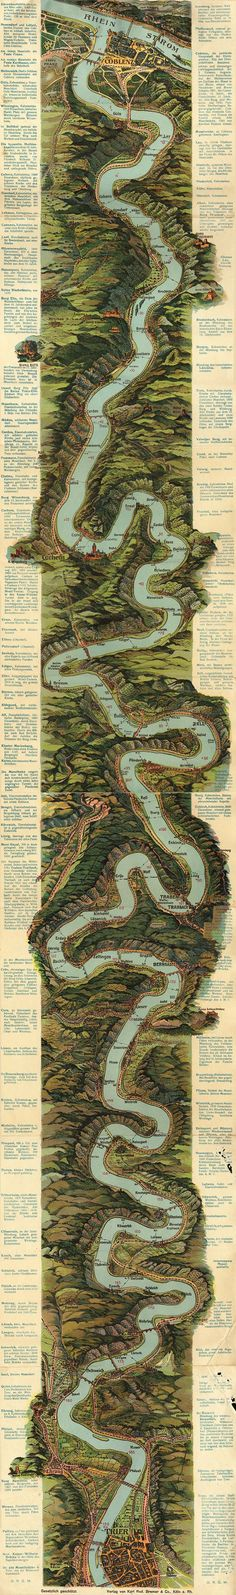 The Mosel River, Germany, circa 1930 #map